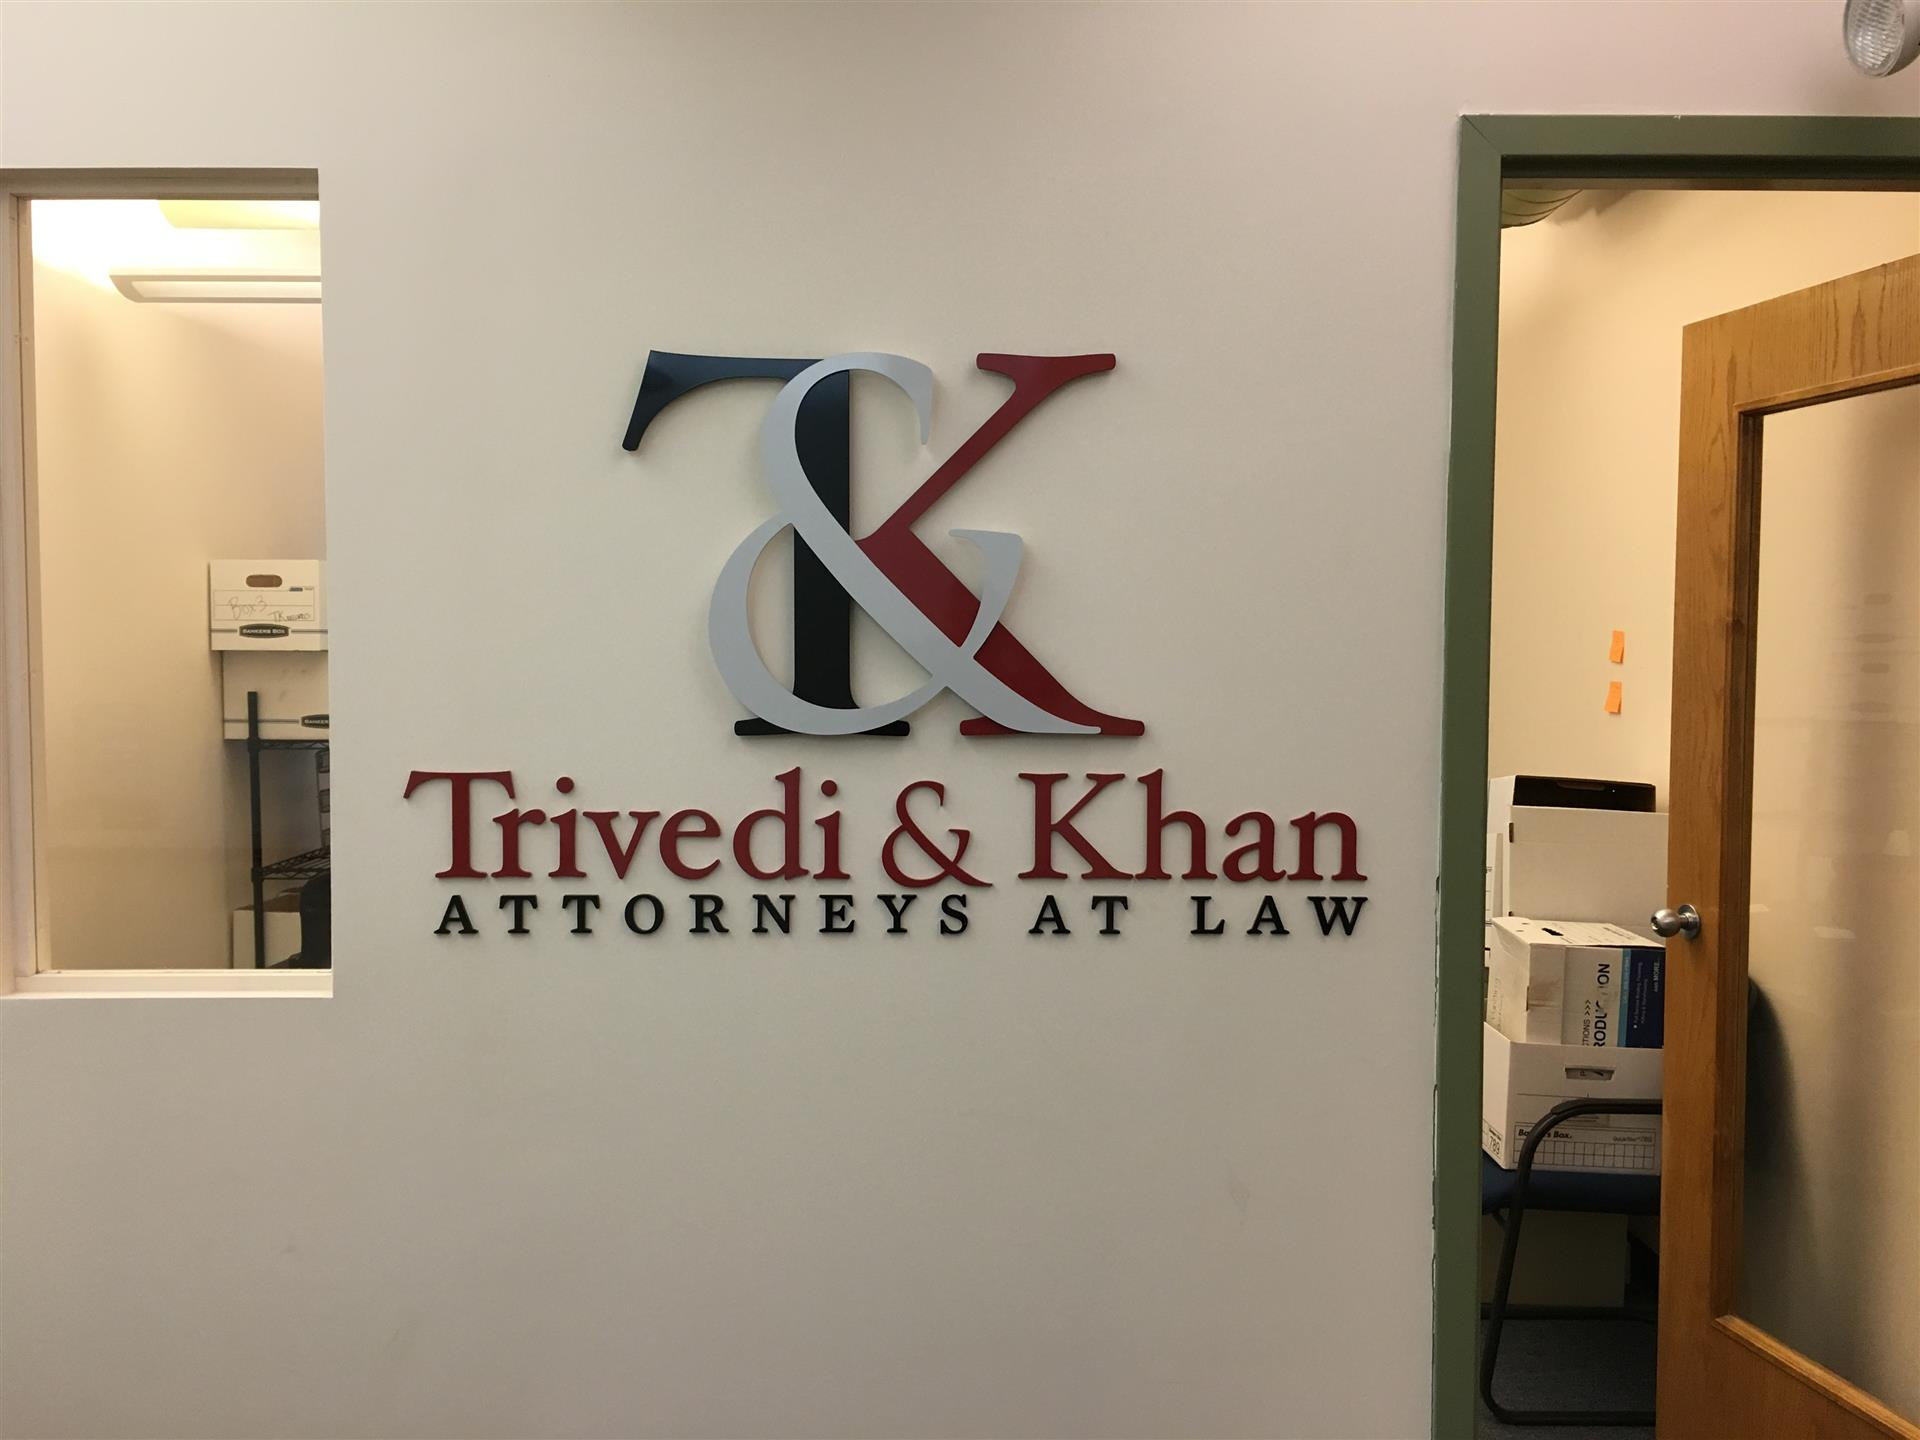 Trivedi & Khan Attorney at Law Lobby Sign